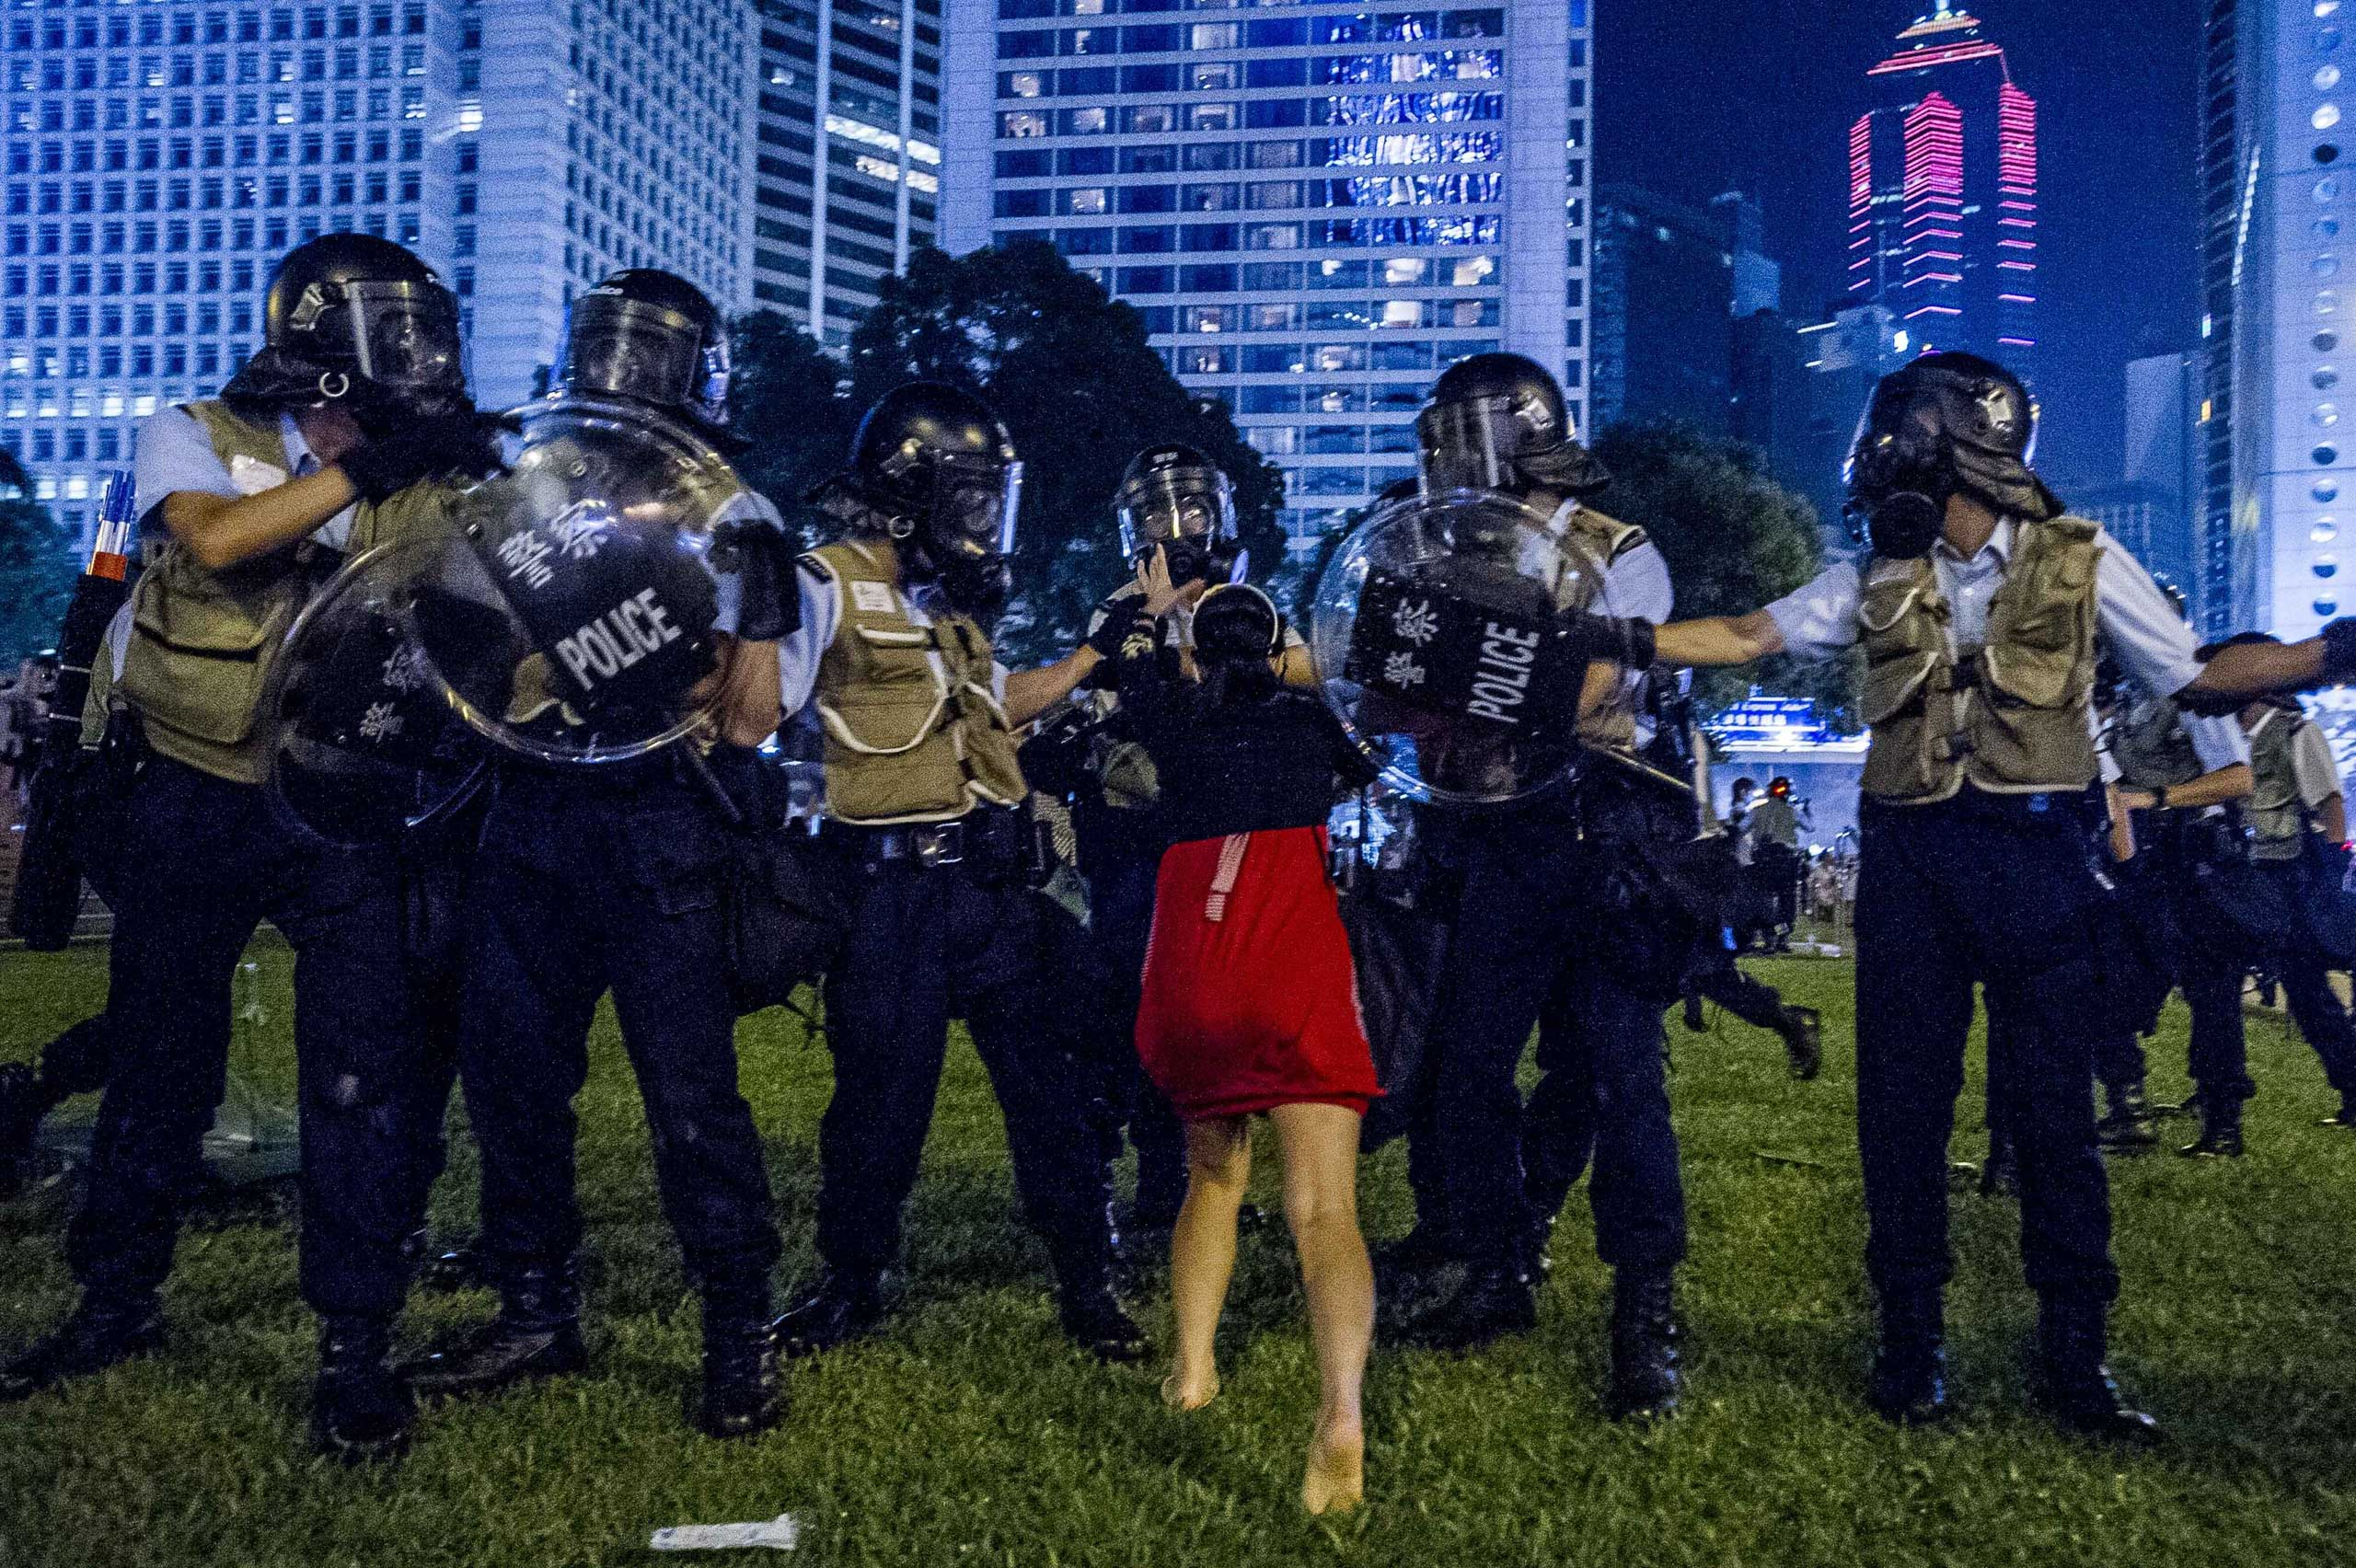 Sept. 28, 2014. A pro-democracy protester confronts the police during a demonstration in Hong Kong. Police fired tear gas as tens of thousands of pro-democracy demonstrators brought parts of central Hong Kong to a standstill on September 28, in a dramatic escalation of protests that have gripped the semi-autonomous Chinese city for days.